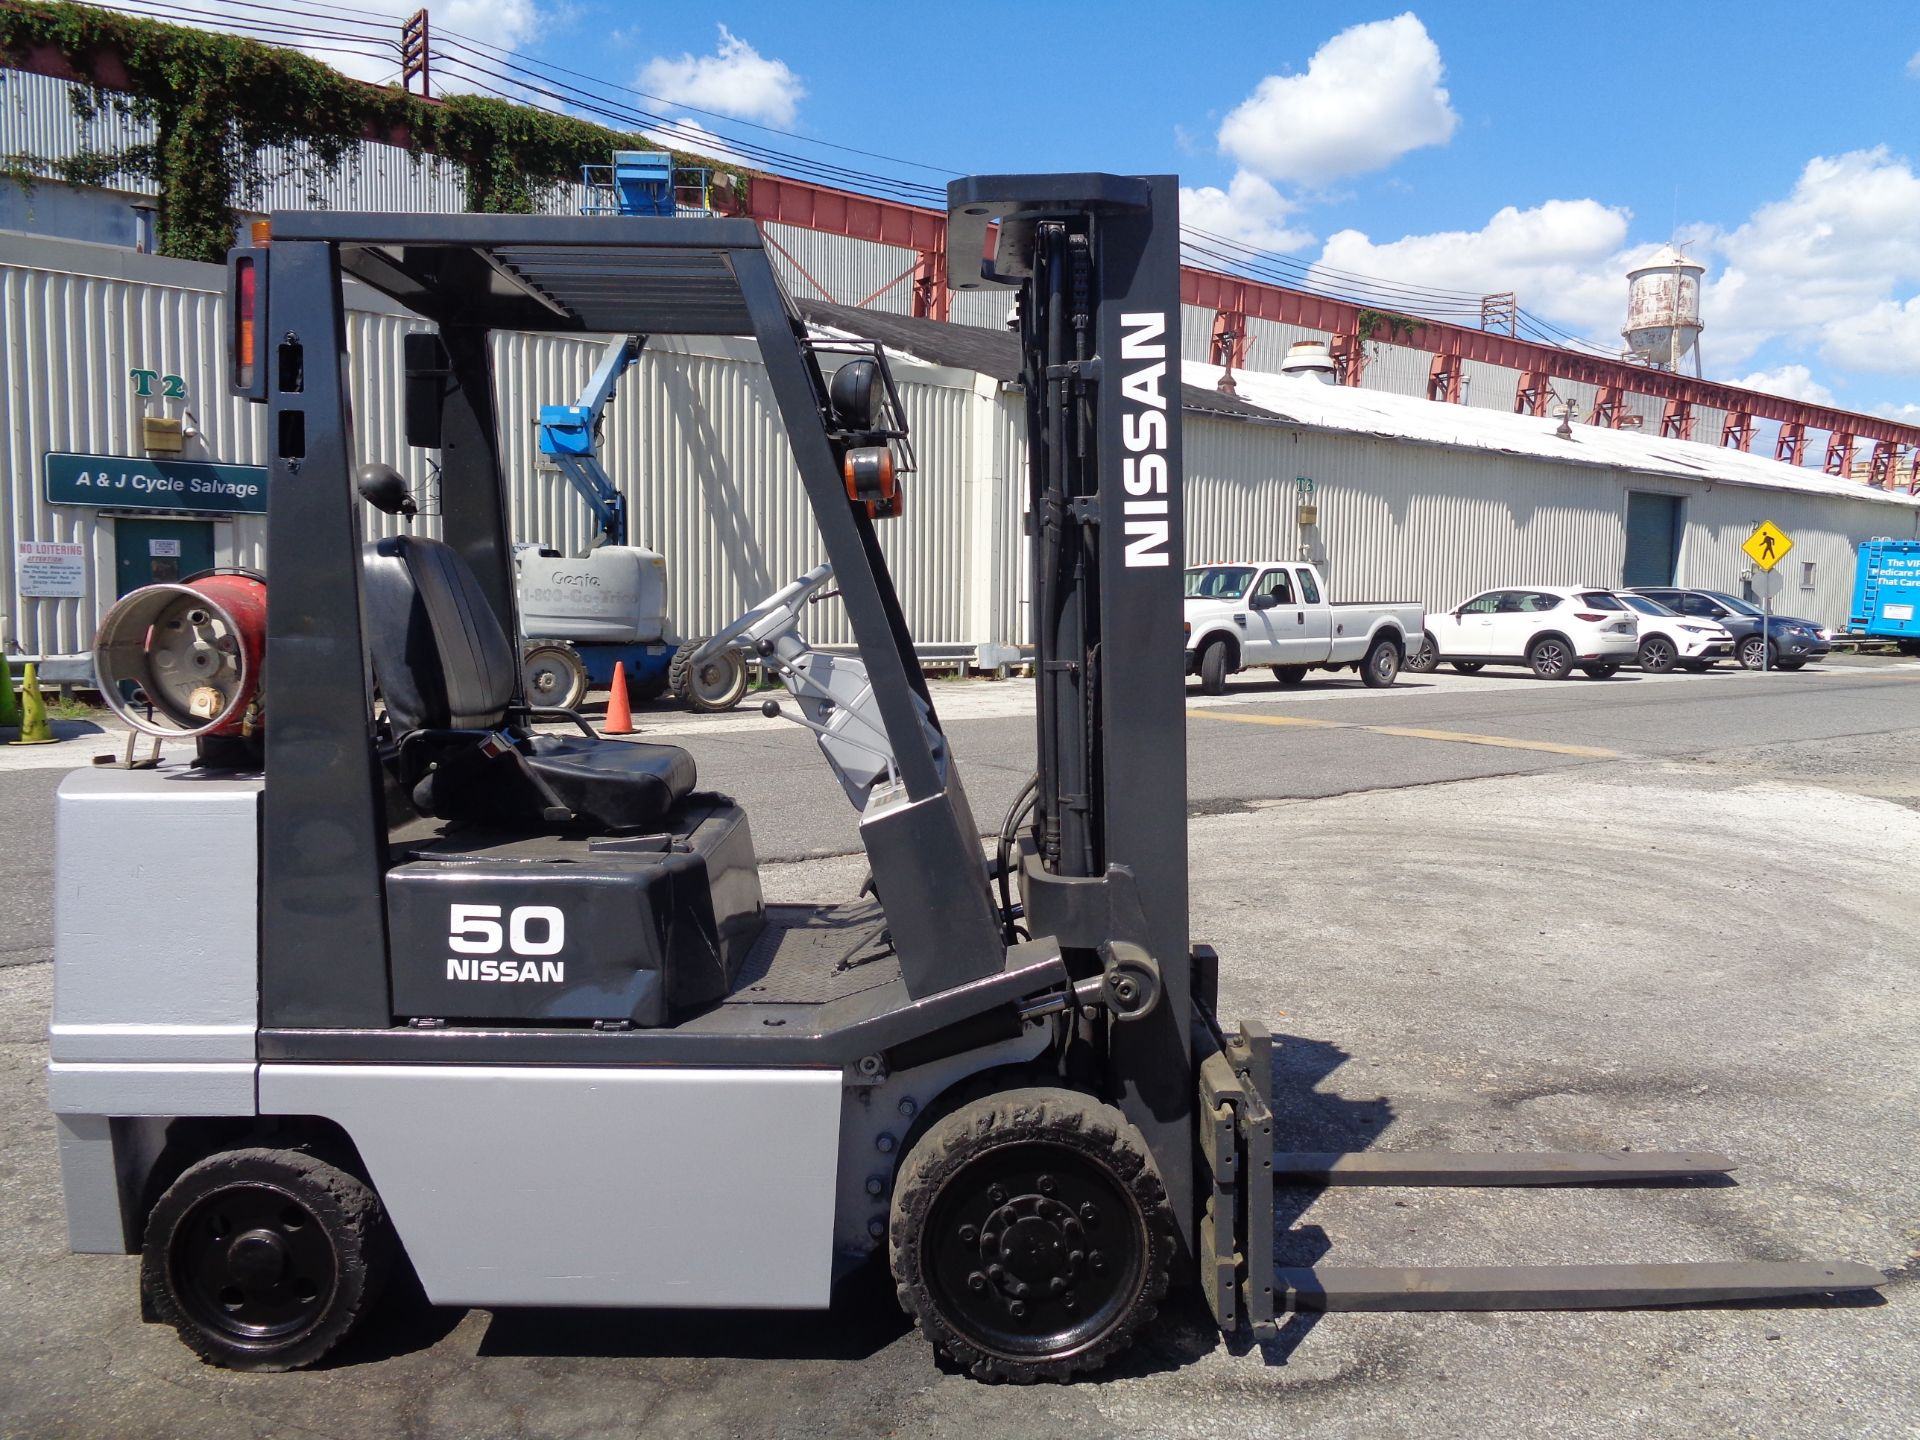 Nissan KCPH02A25PV 4,400 lb Forklift - Image 6 of 17